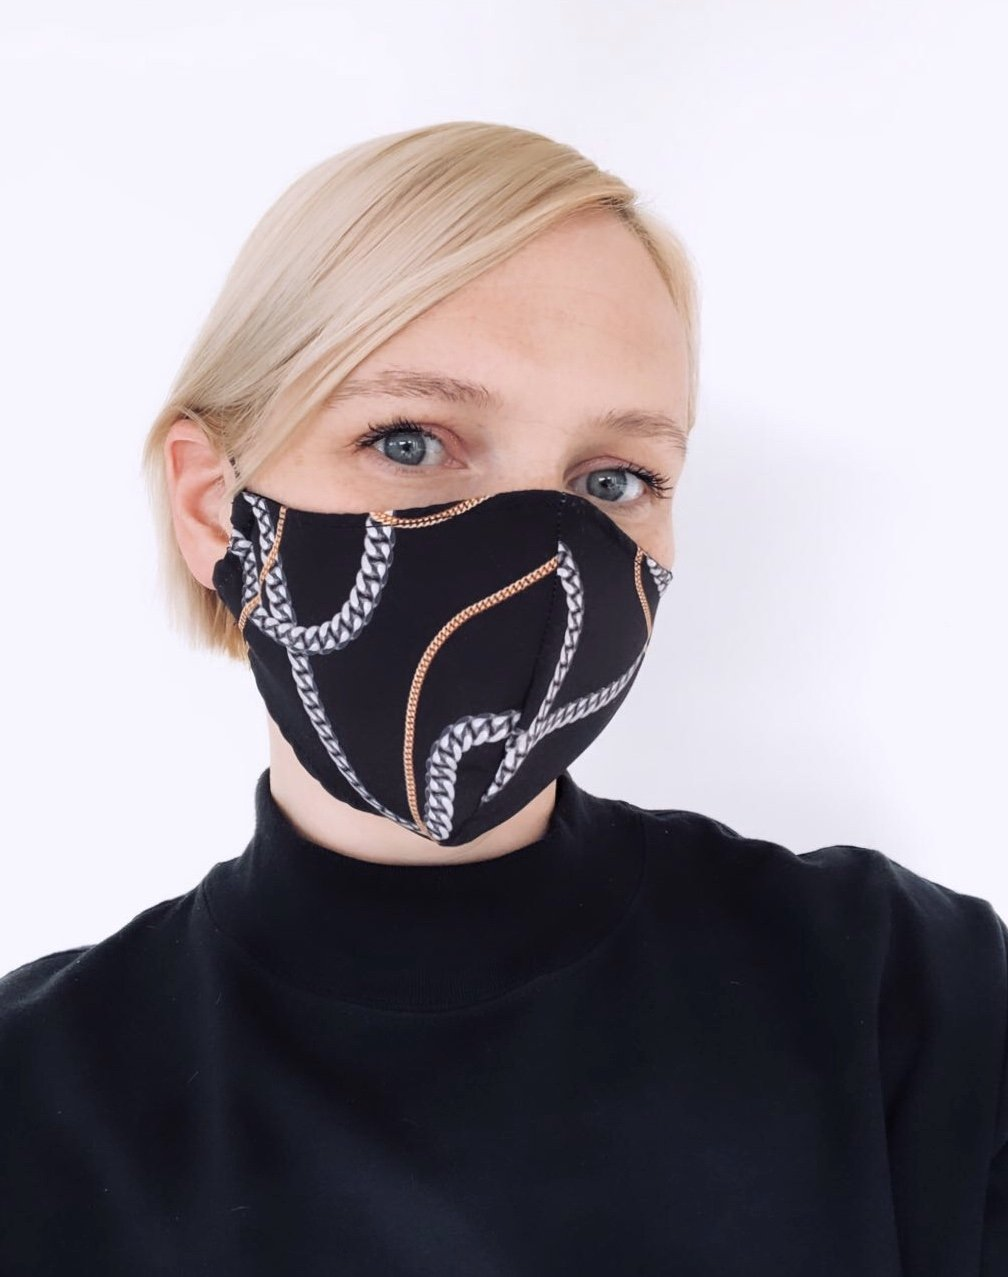 CUSTOM FACE MASK COVERING FOR CHARITY (Non-Profit) - CHAIN PRINT